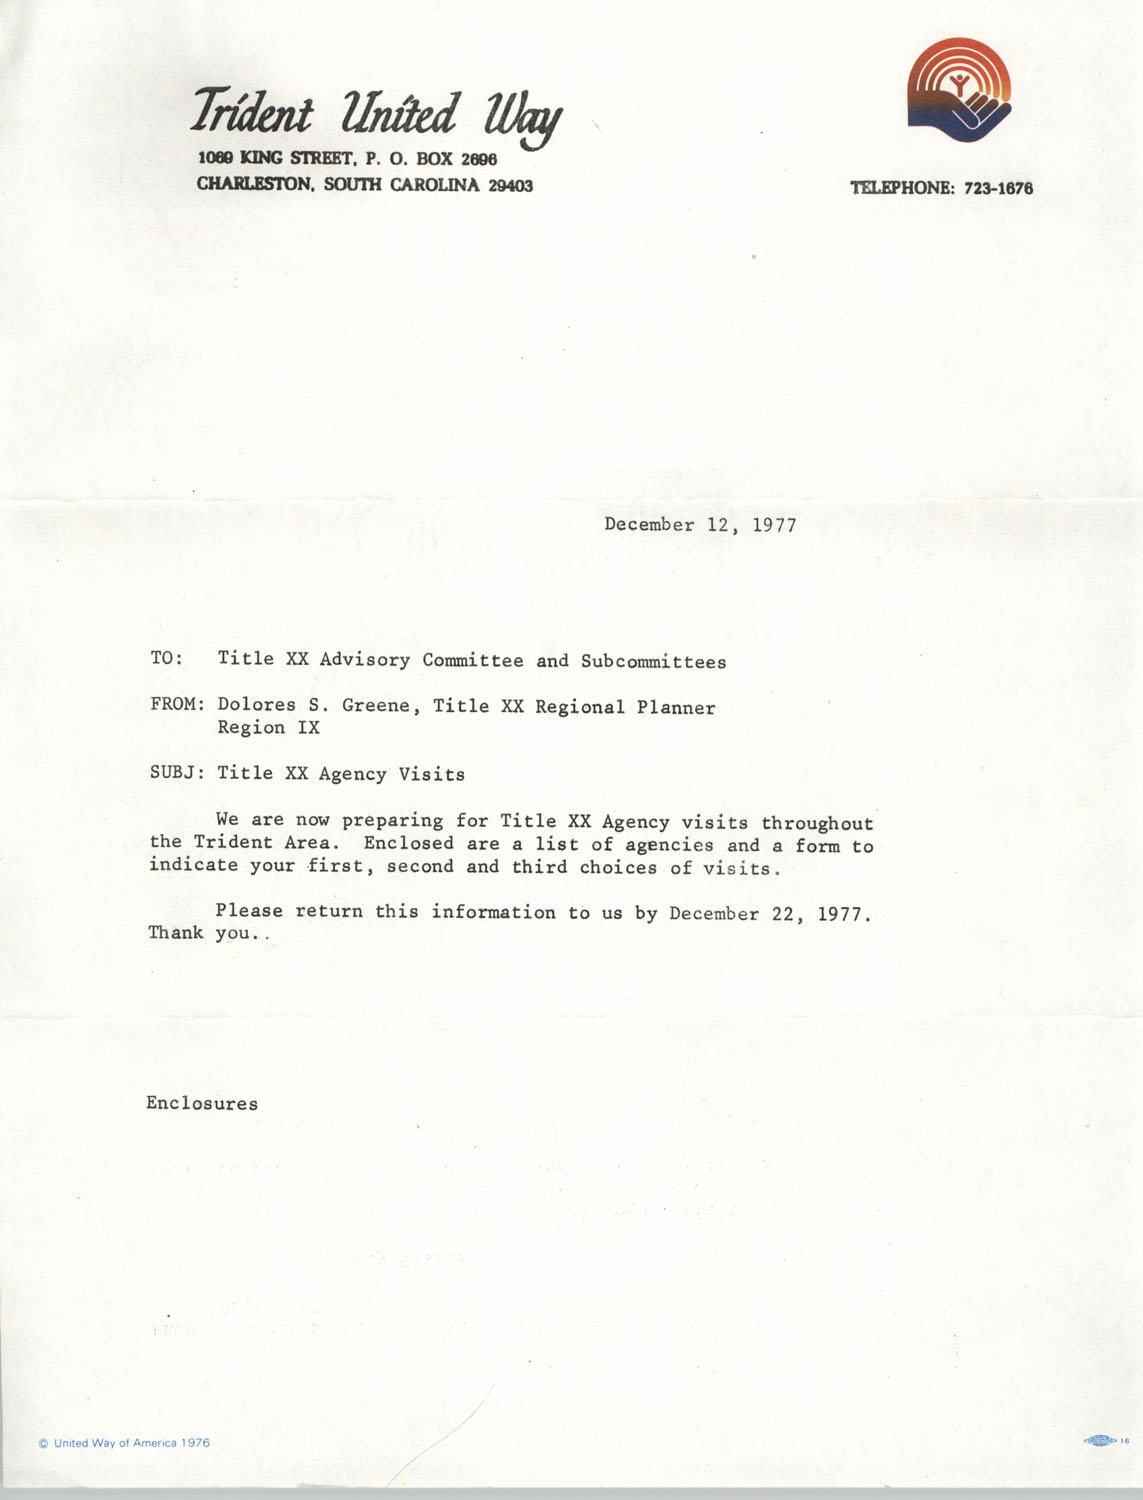 Memorandum from Dolores S. Greene to Title XX Advisory Committee and Subcommittees, Trident United Way, December 12, 1977